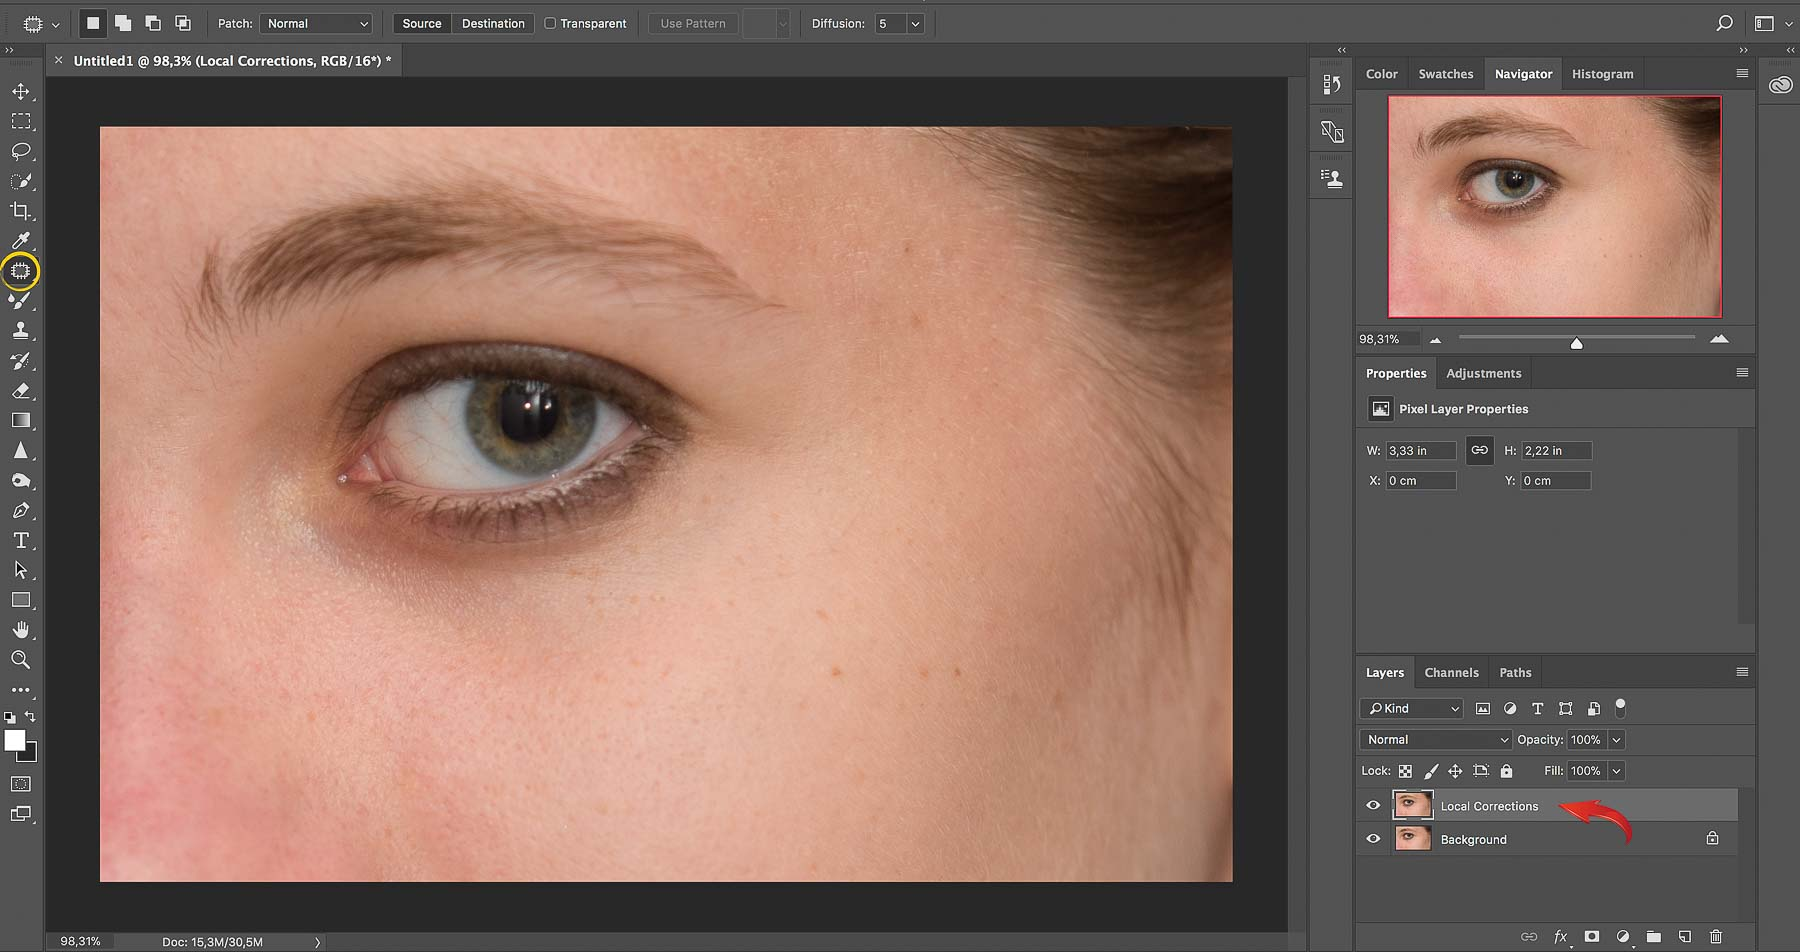 Local Corrections with the Patch tool | Photoshop Skin Retouching • Portrait Retouching Workflow